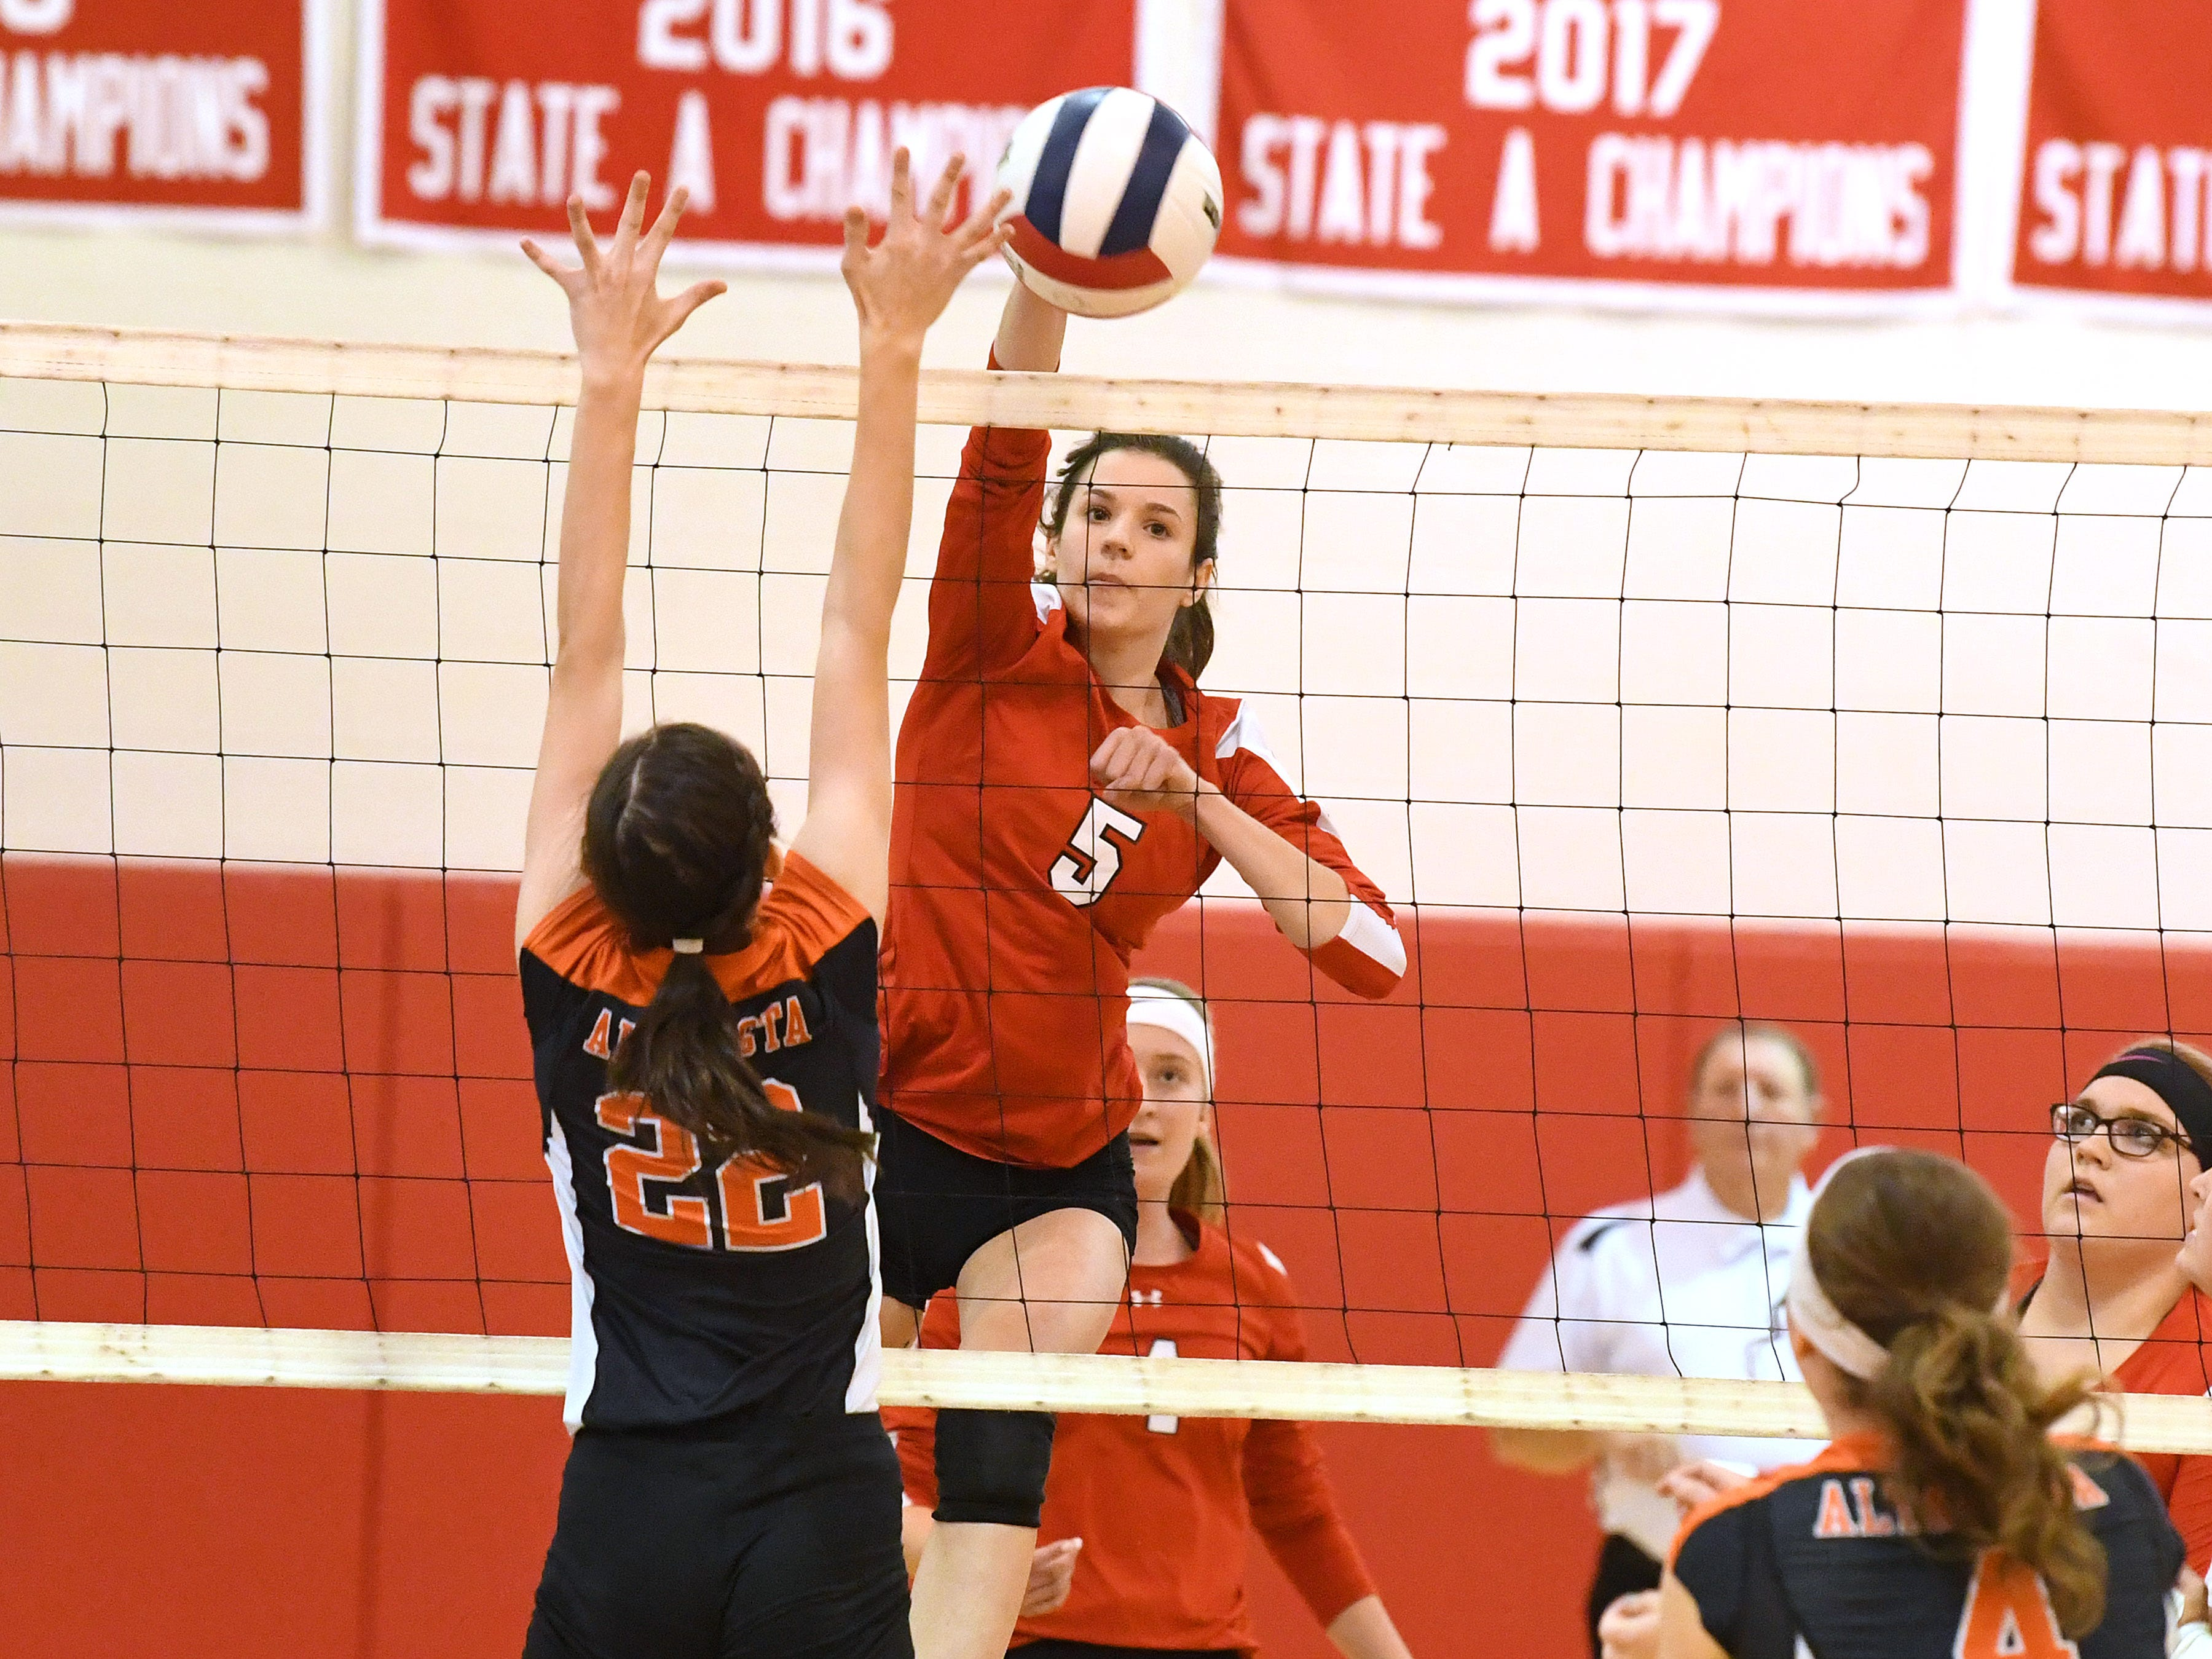 Riverheads' Abbey Eavers spikes the ball past Altavista's Lillian Castro during the Region 1B volleyball championship played in Greenville on Wednesday, Nov. 7, 2018.